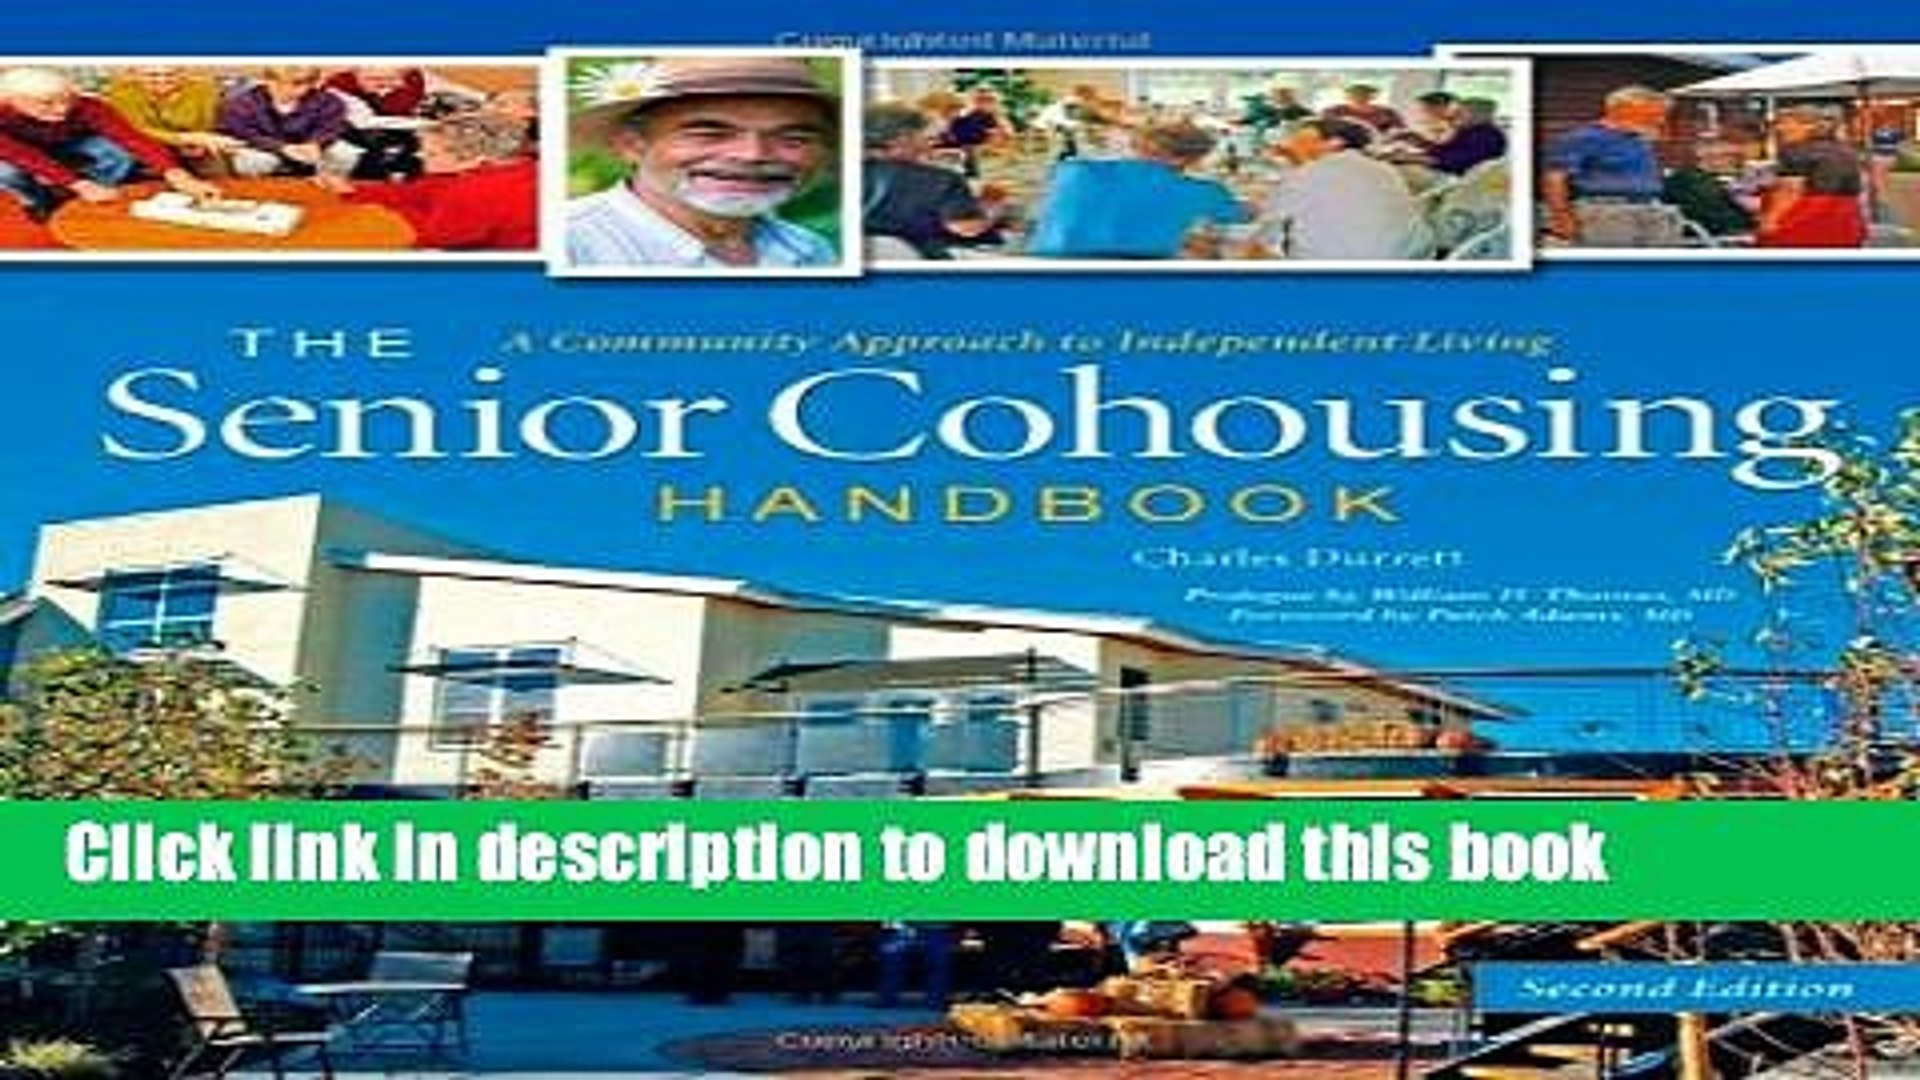 The Senior Cohousing Handbook, 2nd Edition: A Community Approach to Independent Living